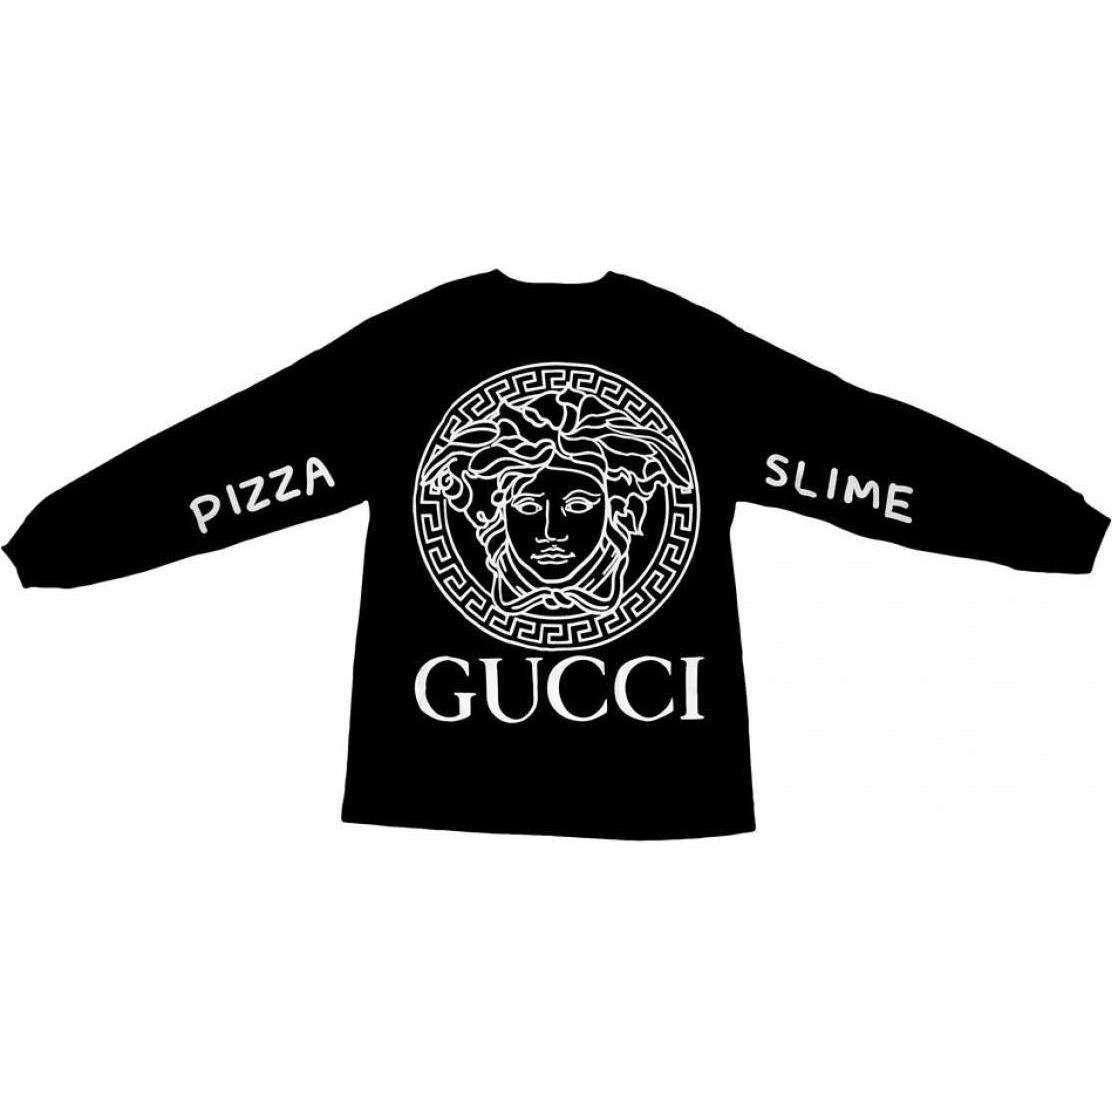 PIZZA SLIME VERSACE GUCCI LOUIS VUITTON CHANEL SHIRT AS SEEN ON ...